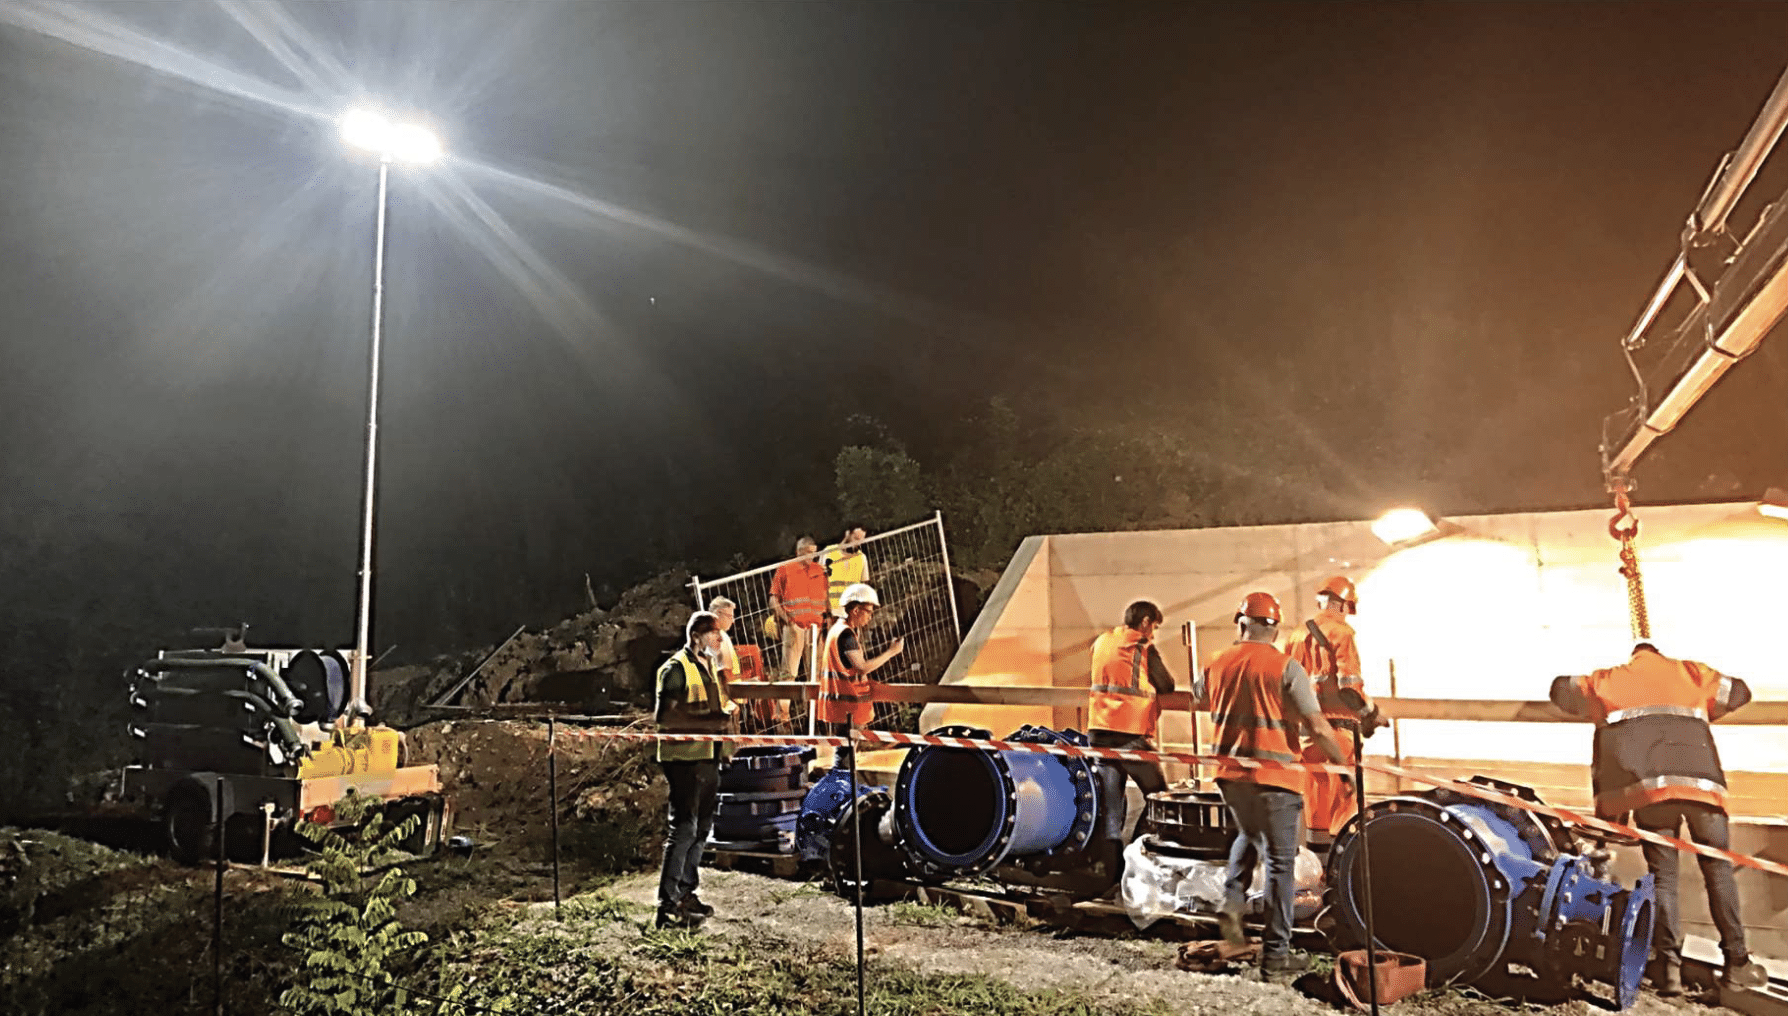 Lampo emergency response trailer unit being used at night for intervention of pipes